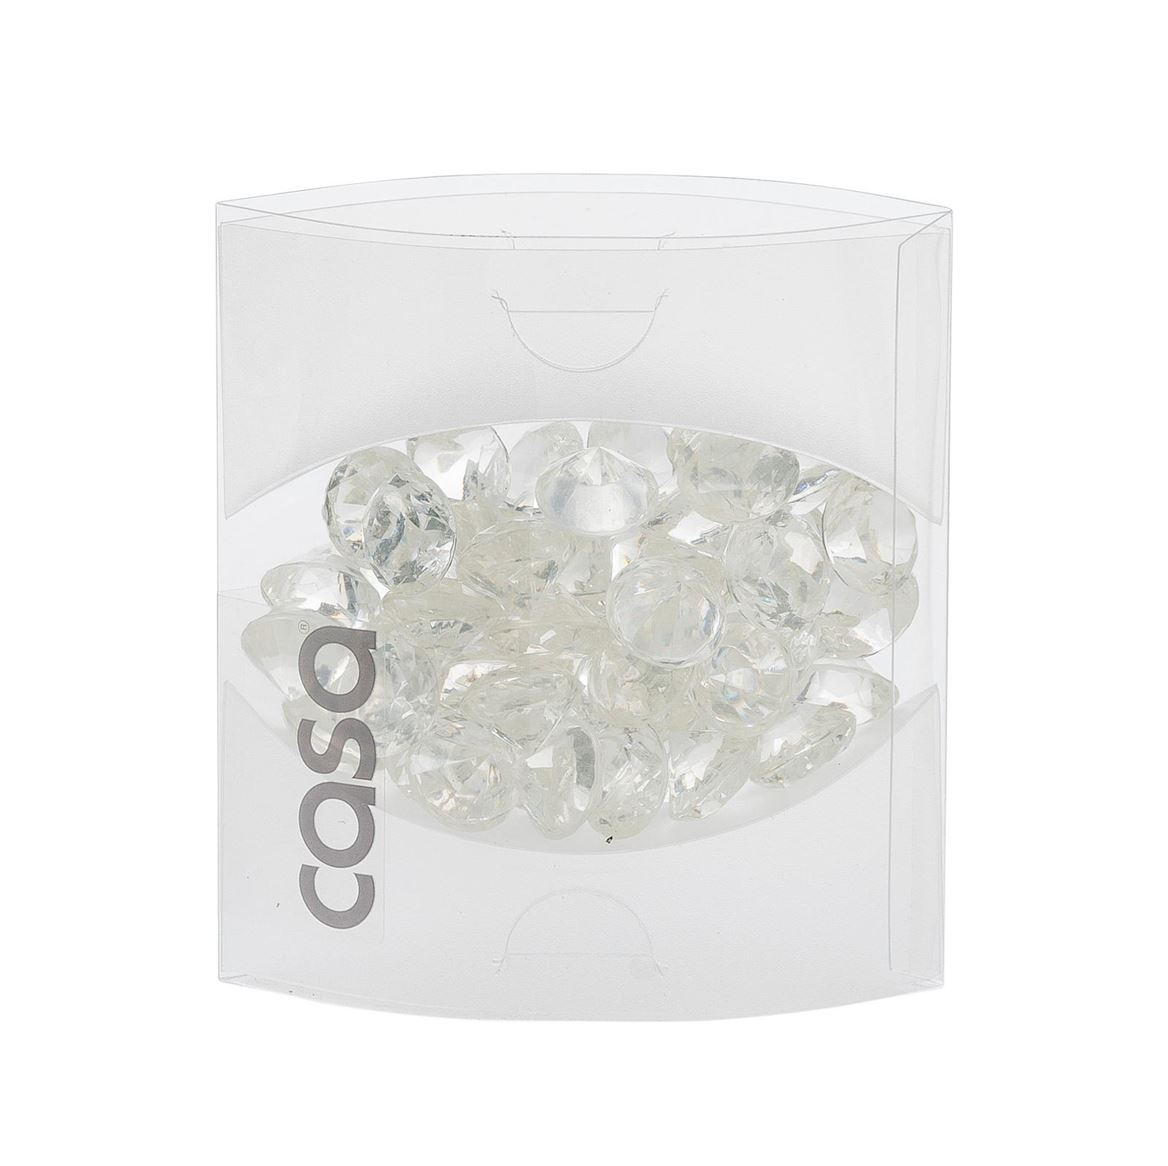 DIAMOND Décoration de table 3 couleurs diverses couleurs Ø 1.9 cm_diamond-décoration-de-table-3-couleurs-diverses-couleurs-ø-1-9-cm